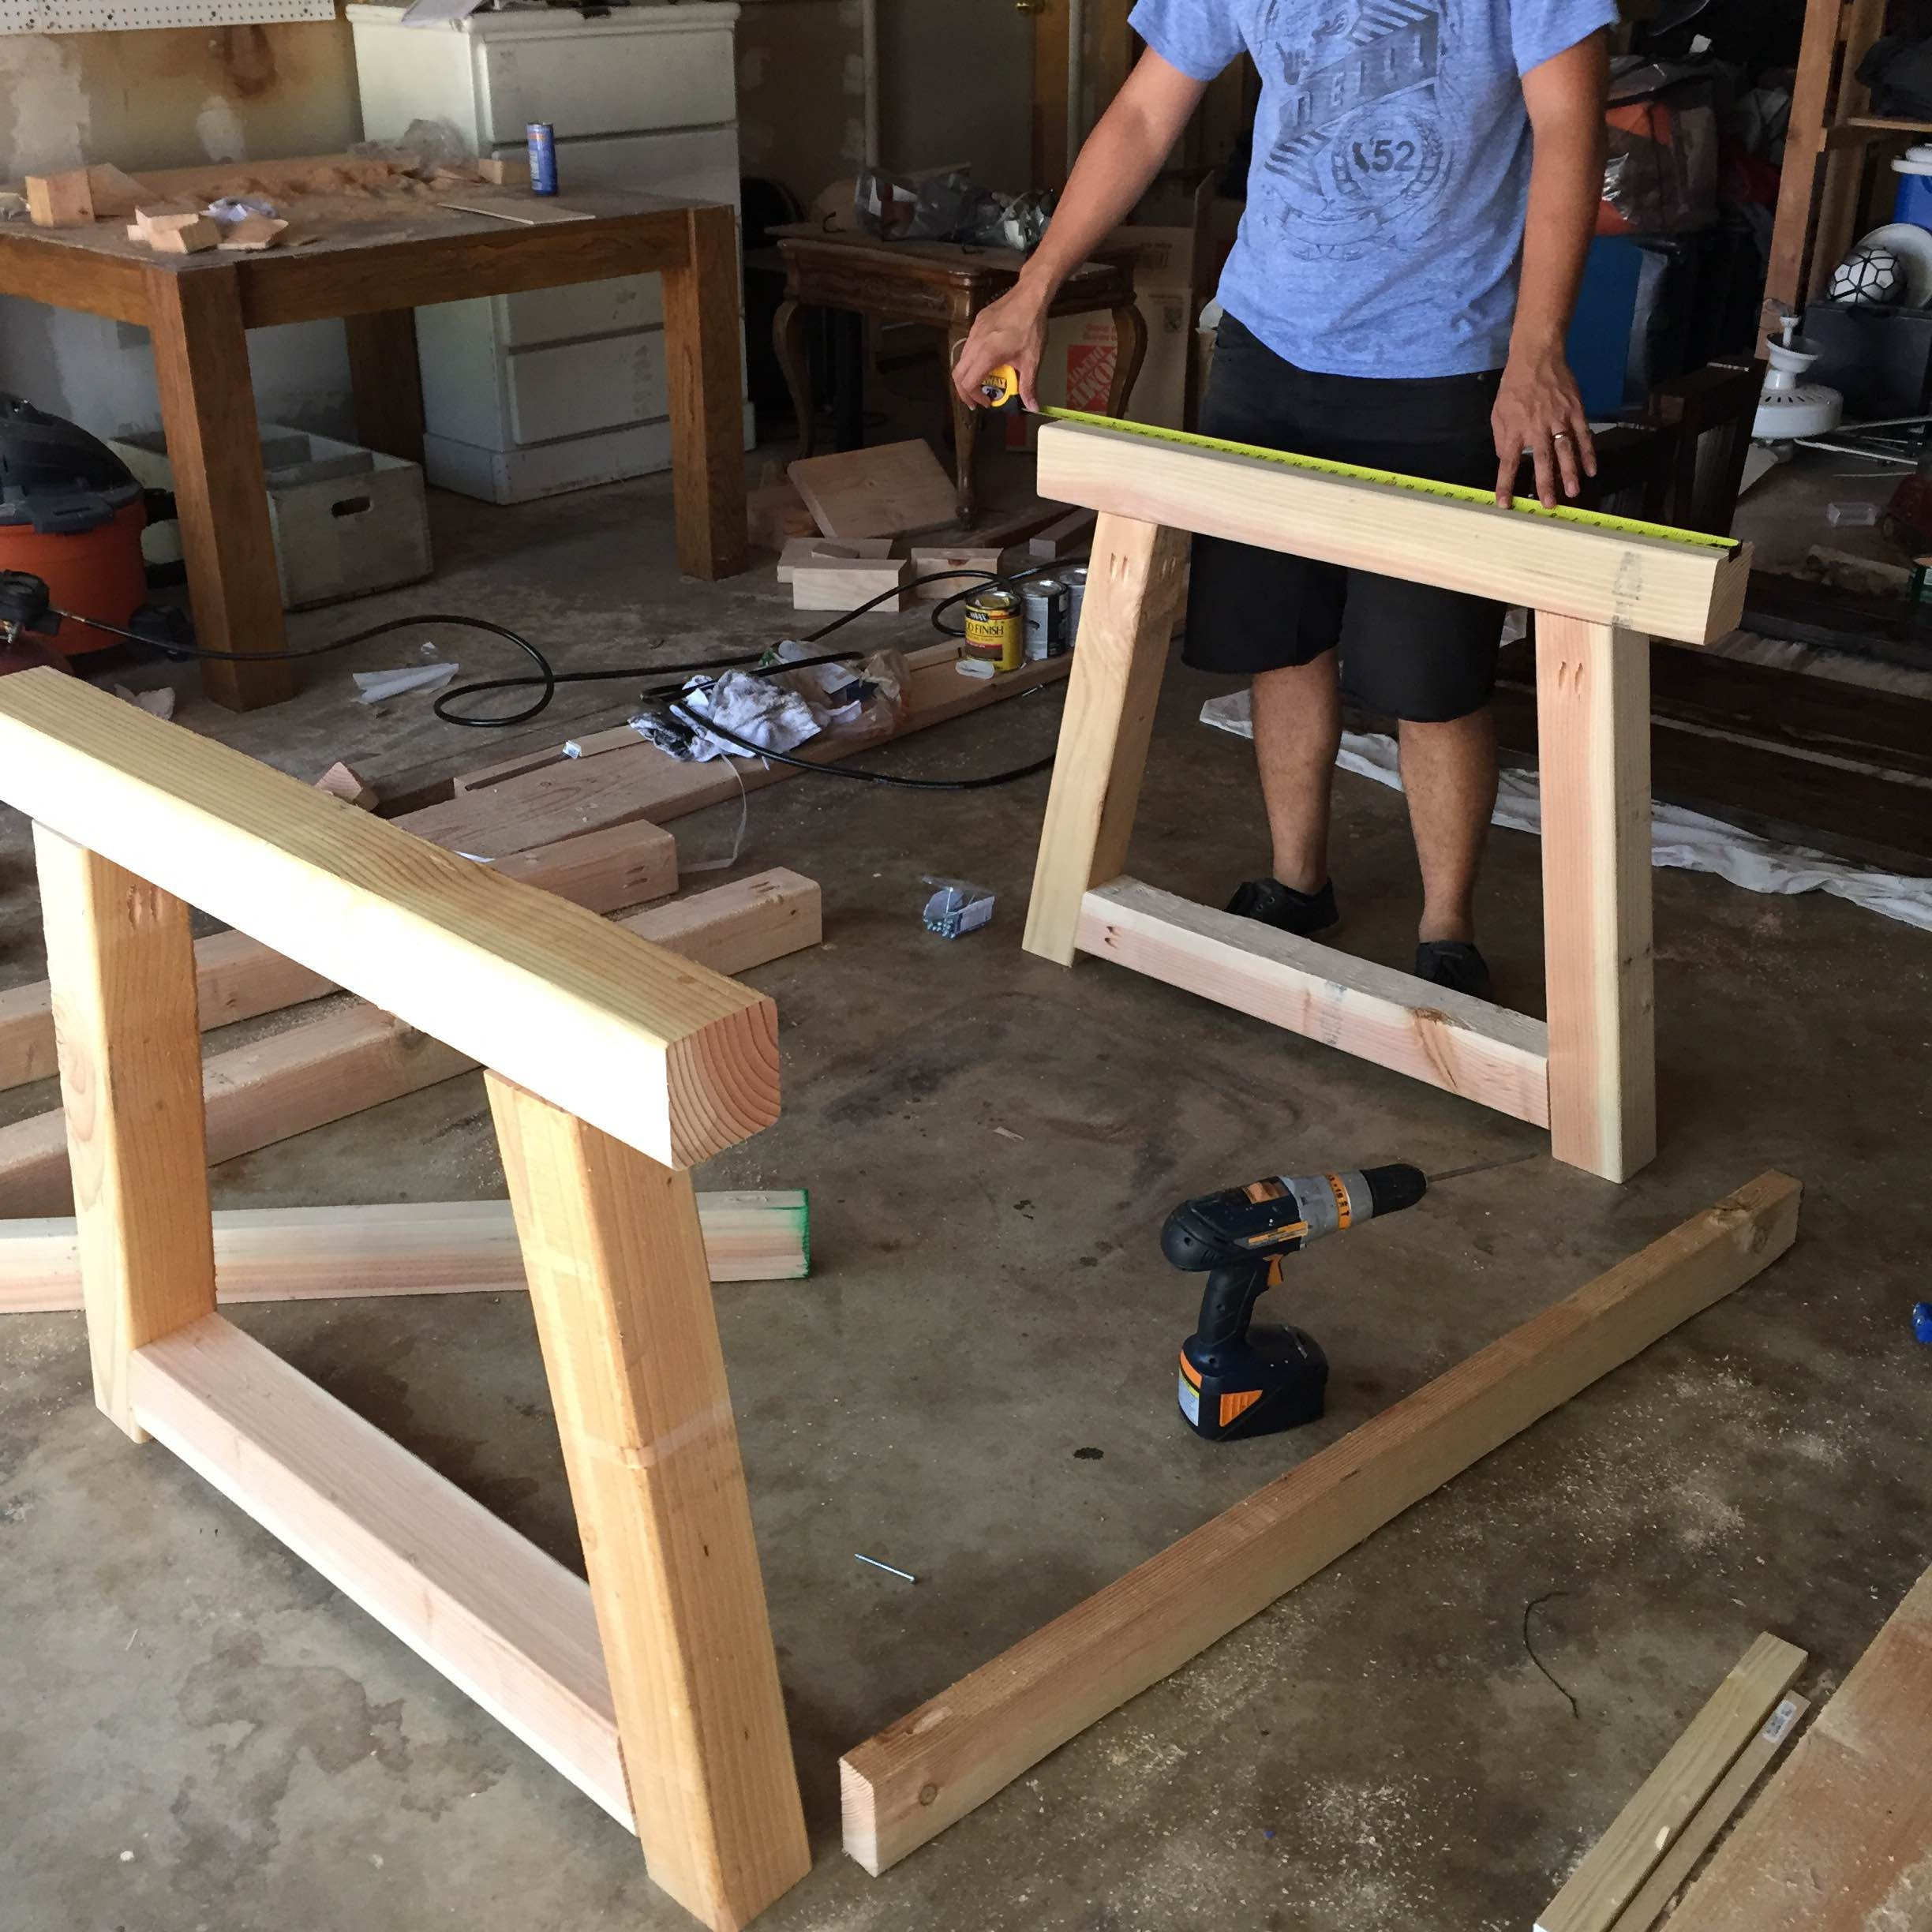 Here's a photo with both legs of the table once we attached them.